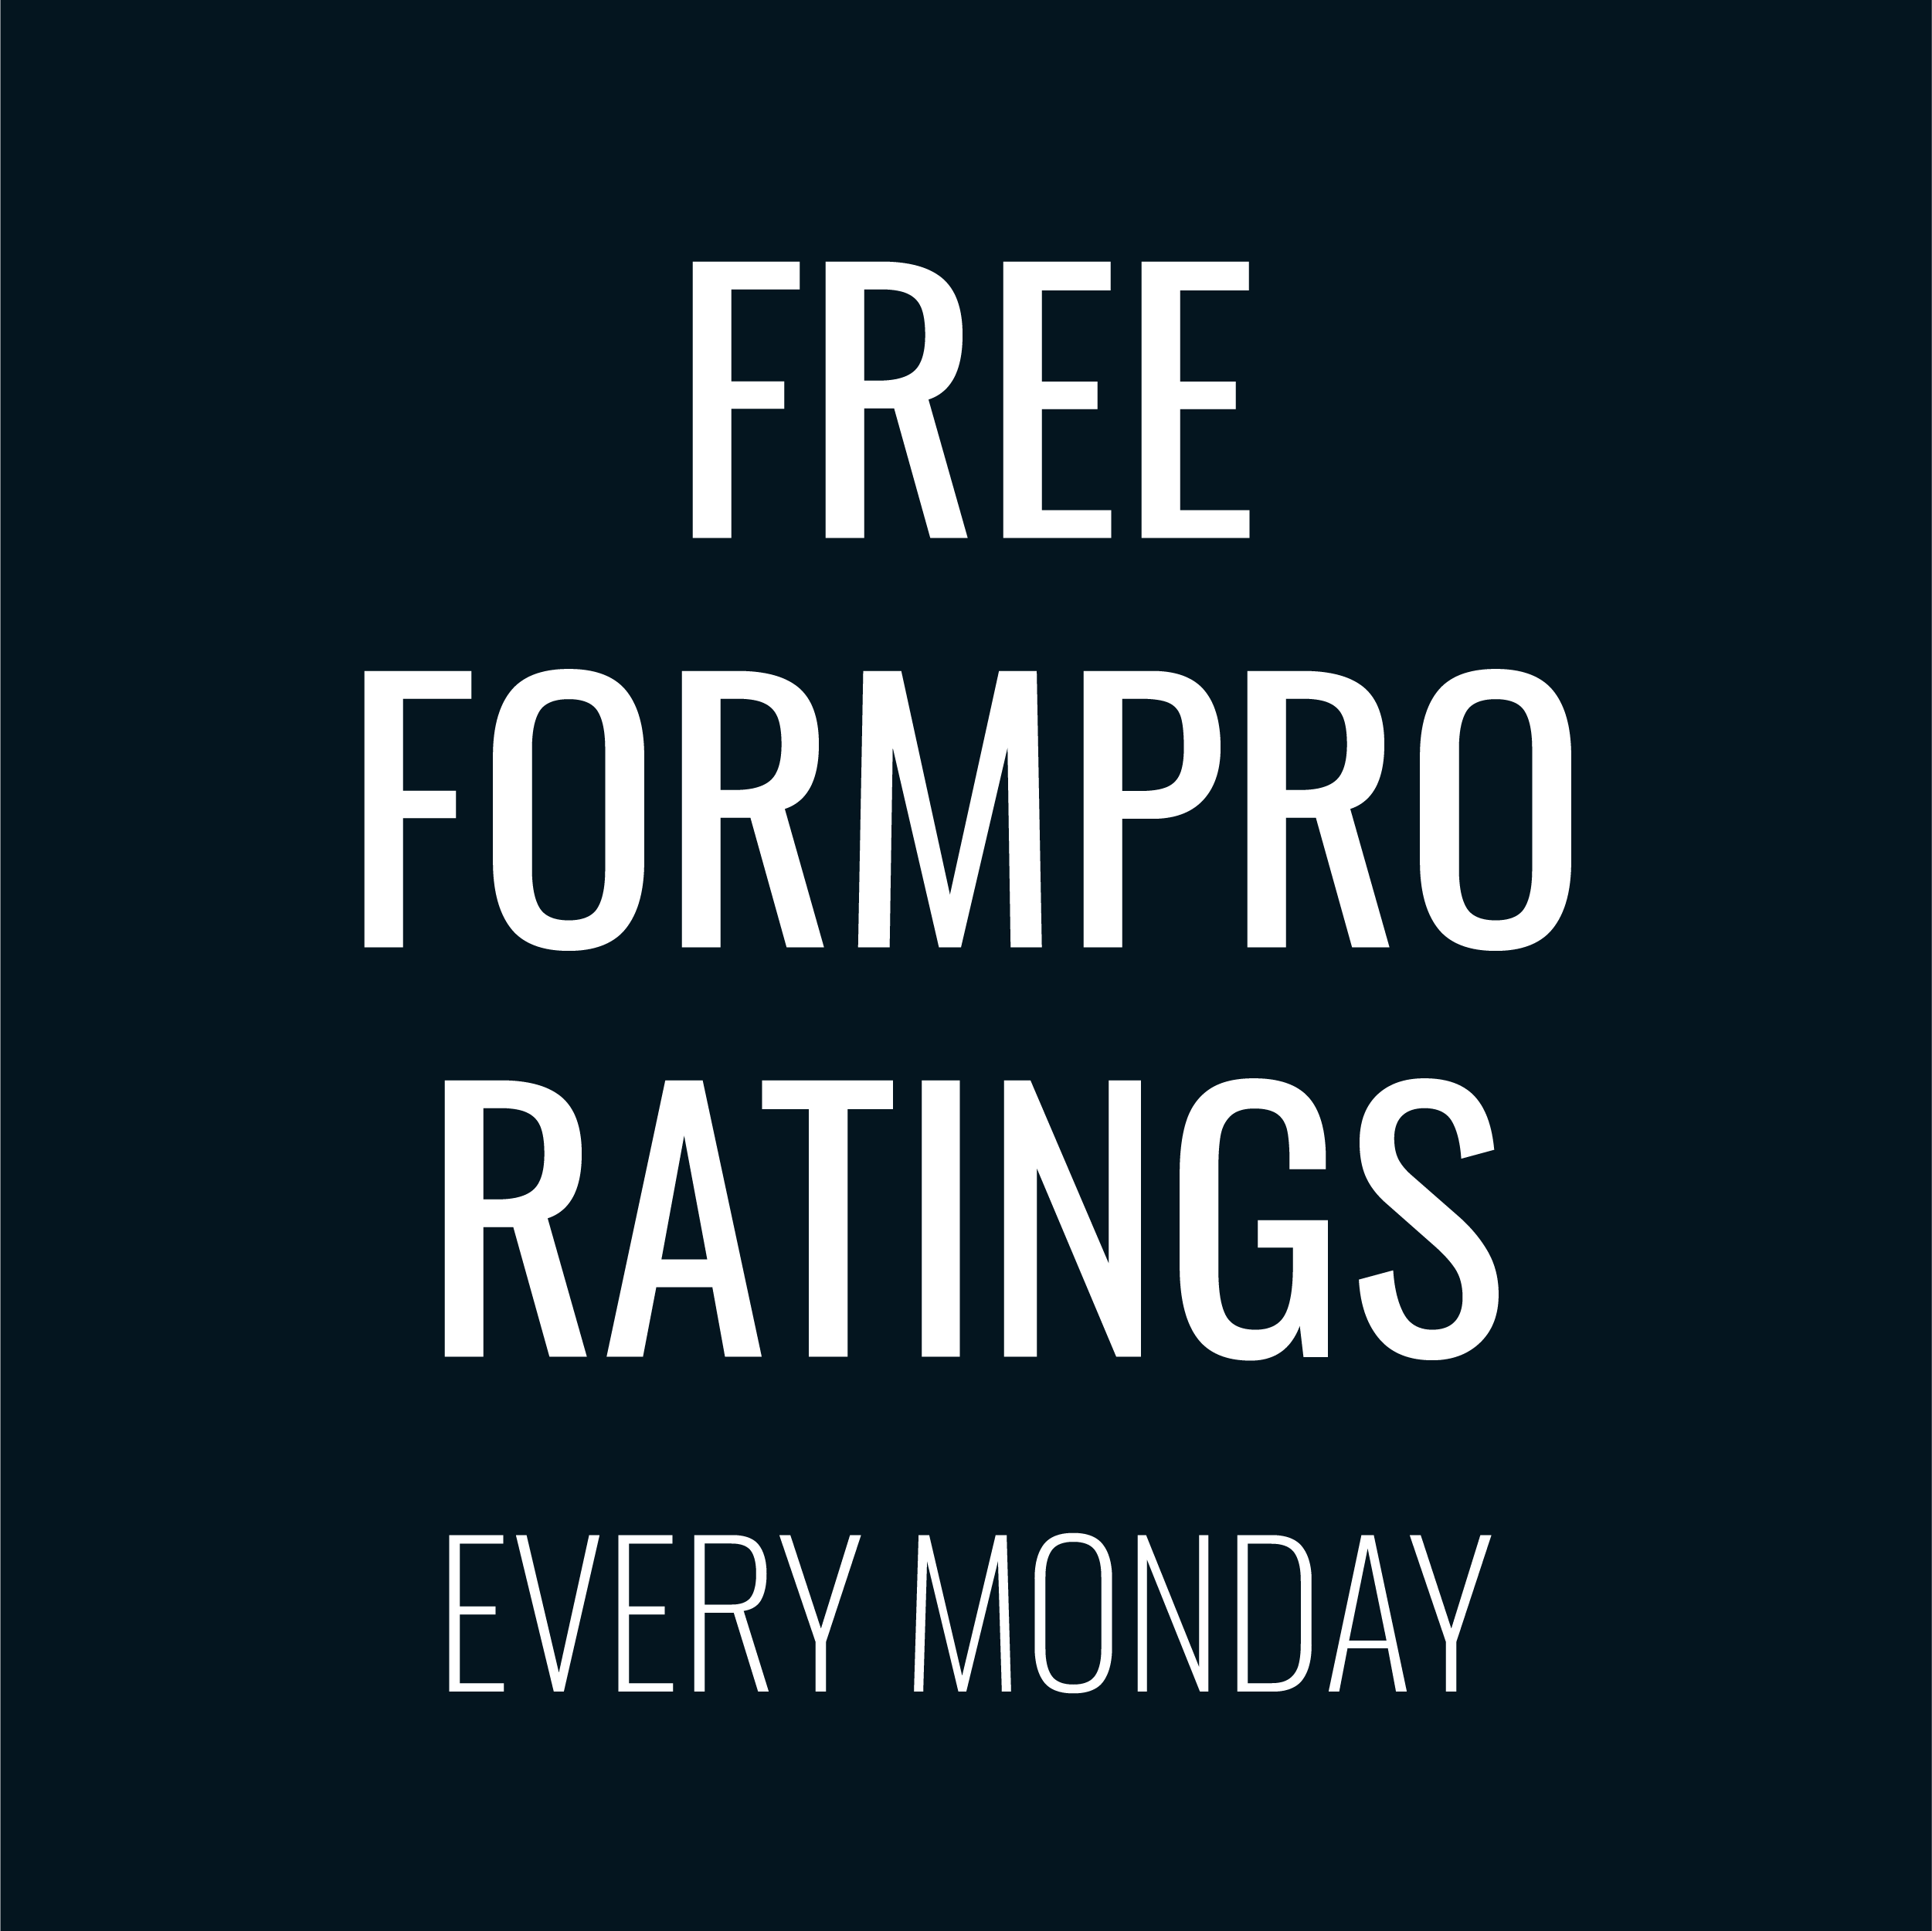 Free Greyhound Ratings Tuesday 26 May